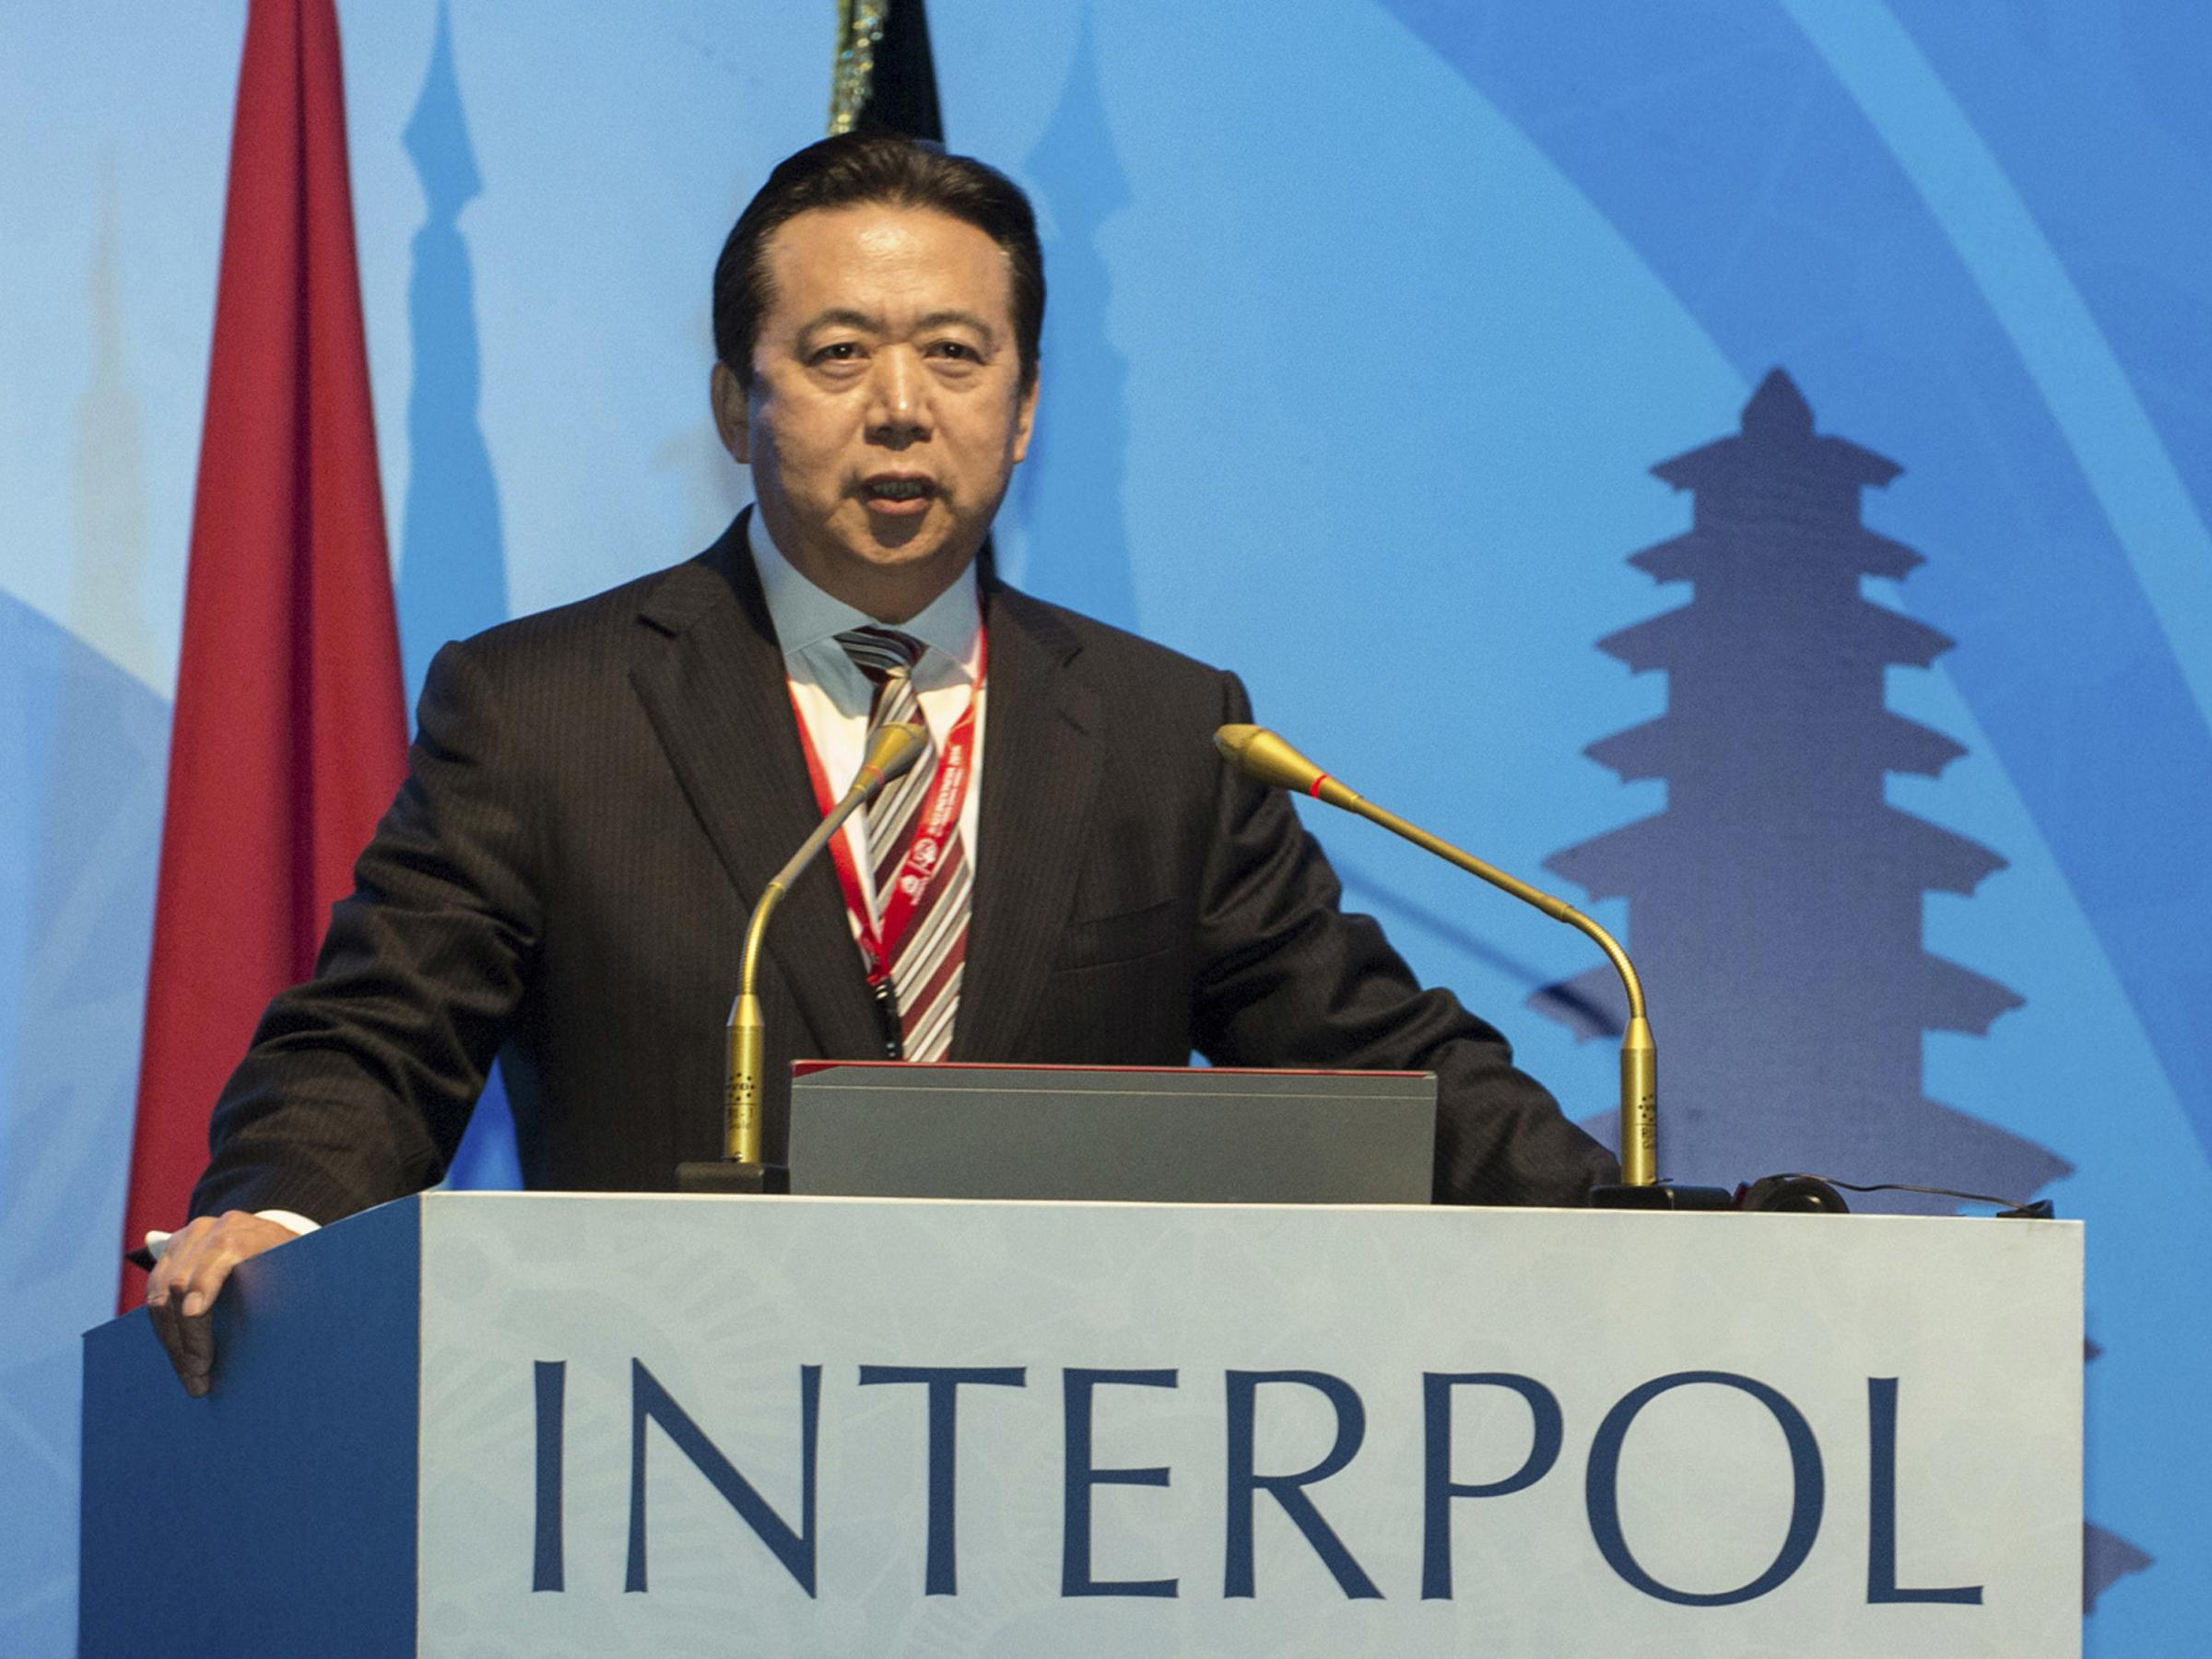 Former Interpol President Pleads Guilty To Bribery In Chinese Court